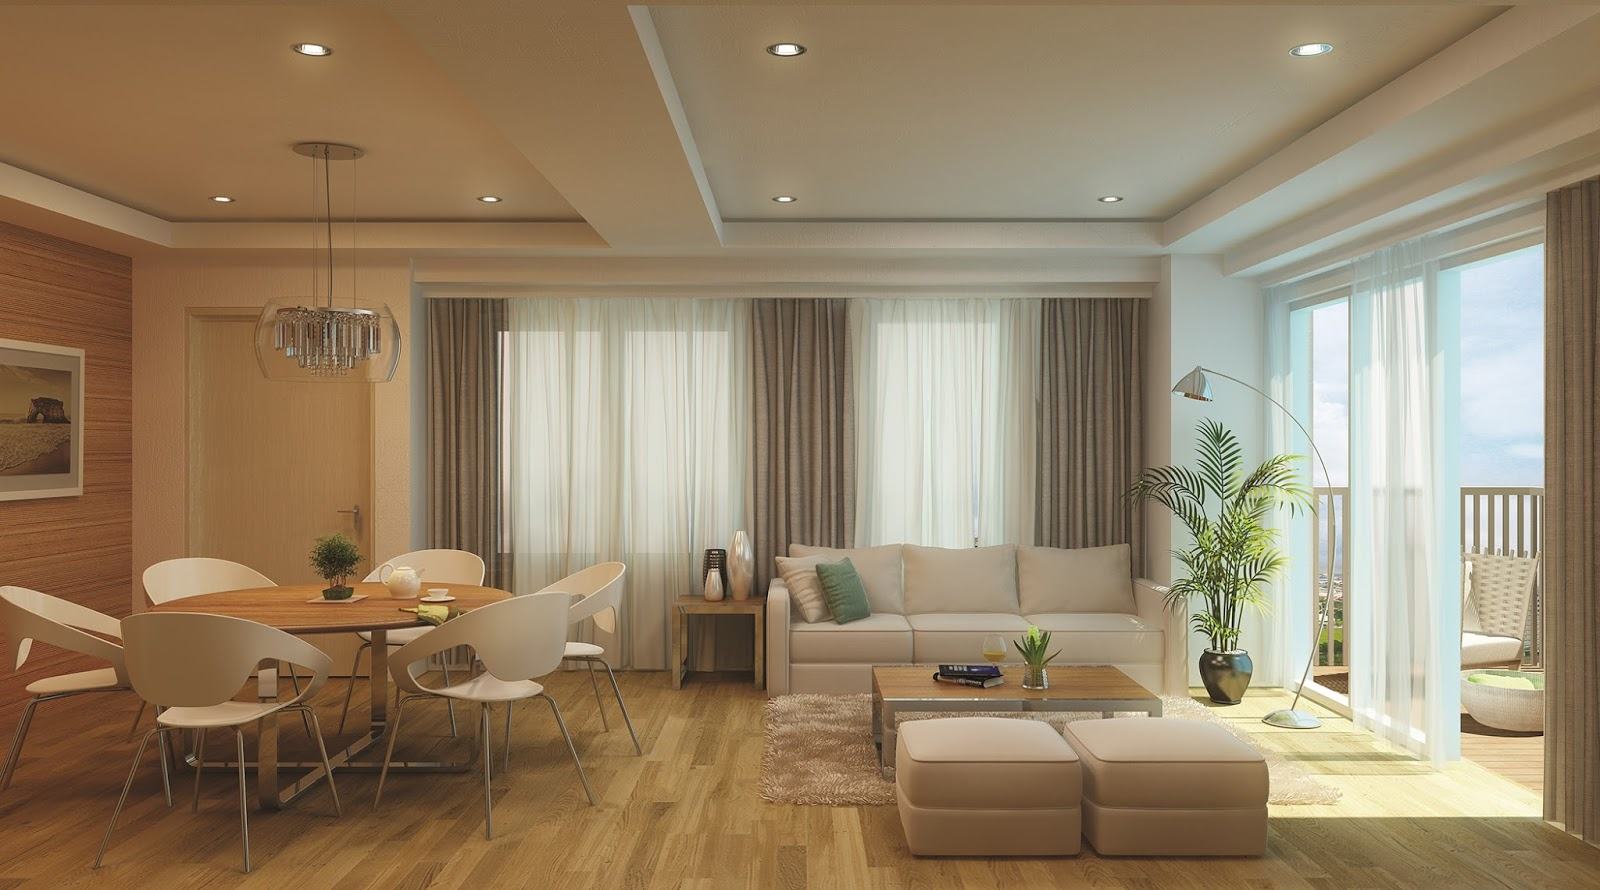 Manila Life Bristol At Parkway Place By Filigree Redefining Luxurious Contemporary High Rise